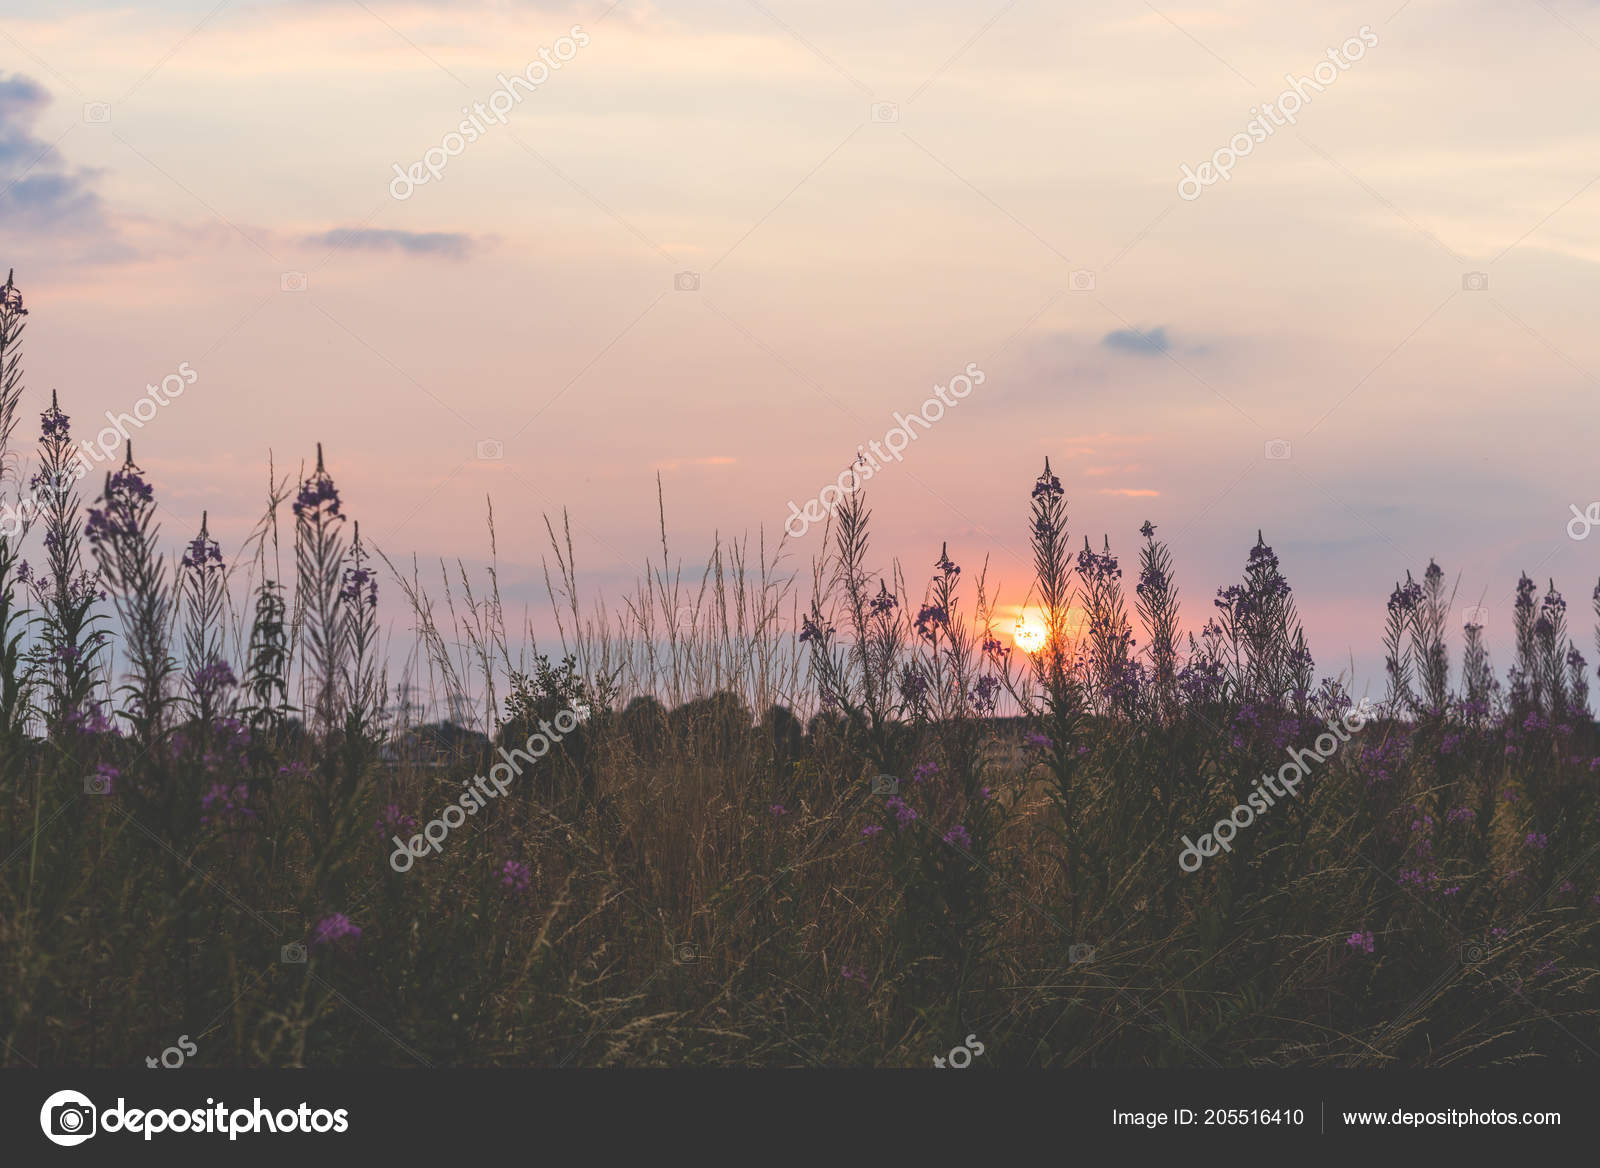 Beautiful Sunset Field Purple Flowers Bochum Germany Stock Photo C Brunosommerfeld 205516410